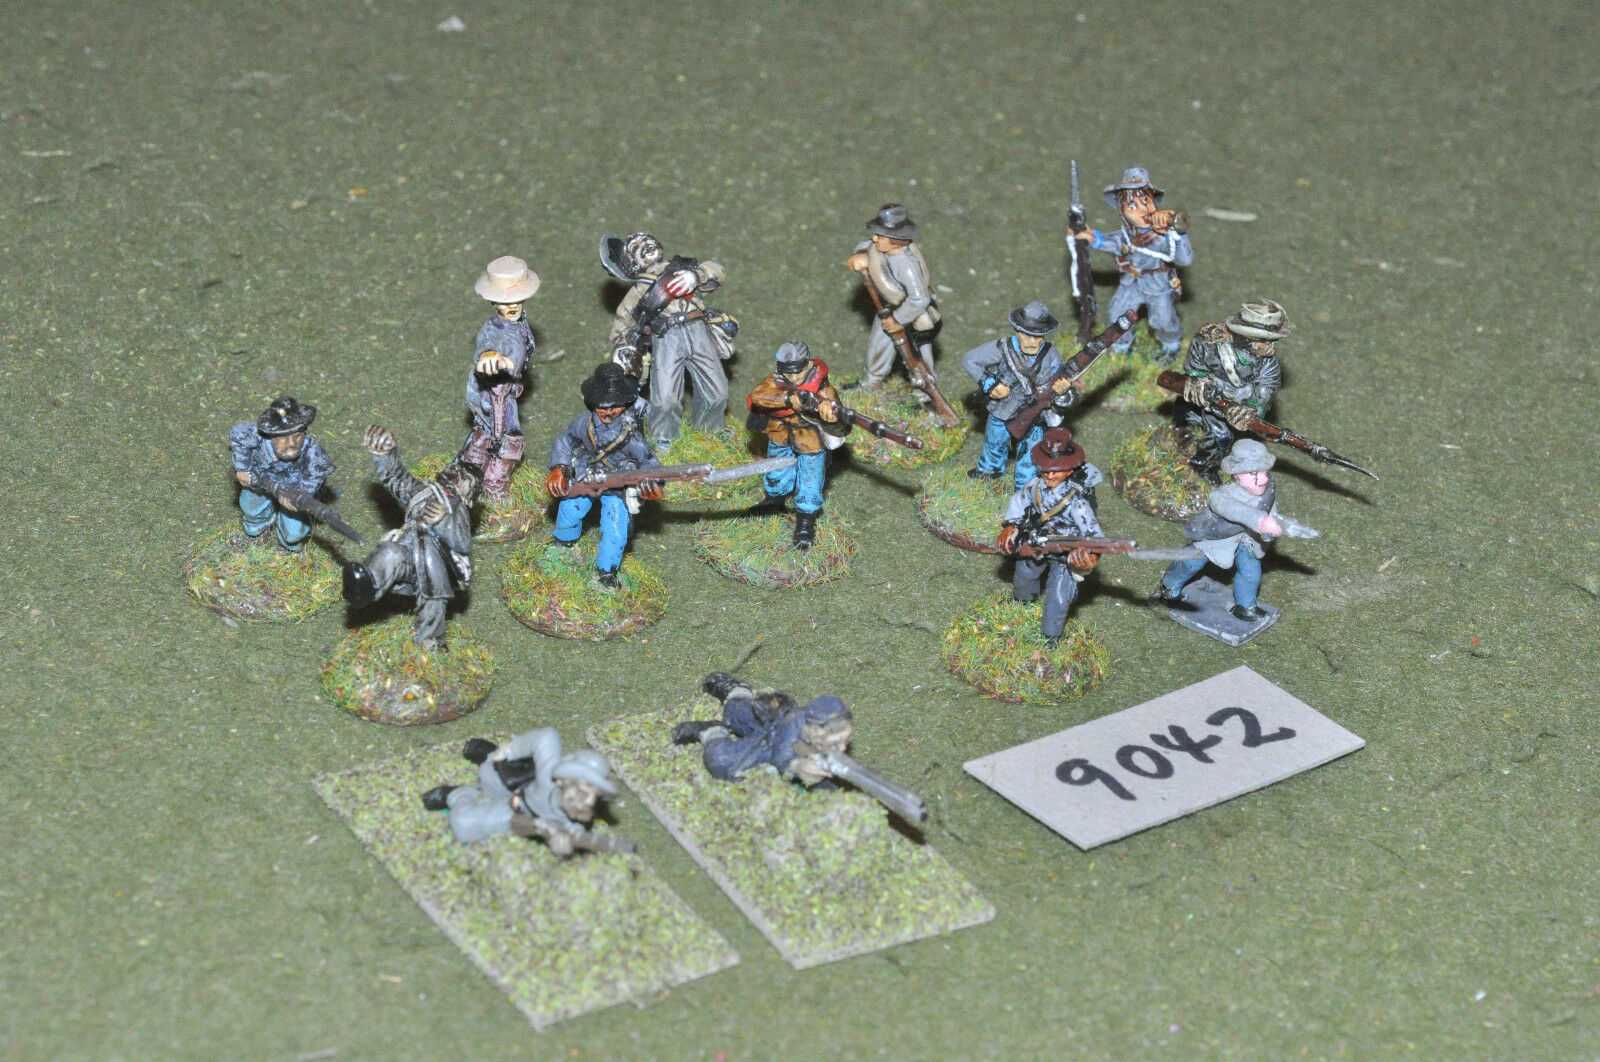 25mm ACW   confederate - civil war 14 skirmishers figs metal - inf (9042)